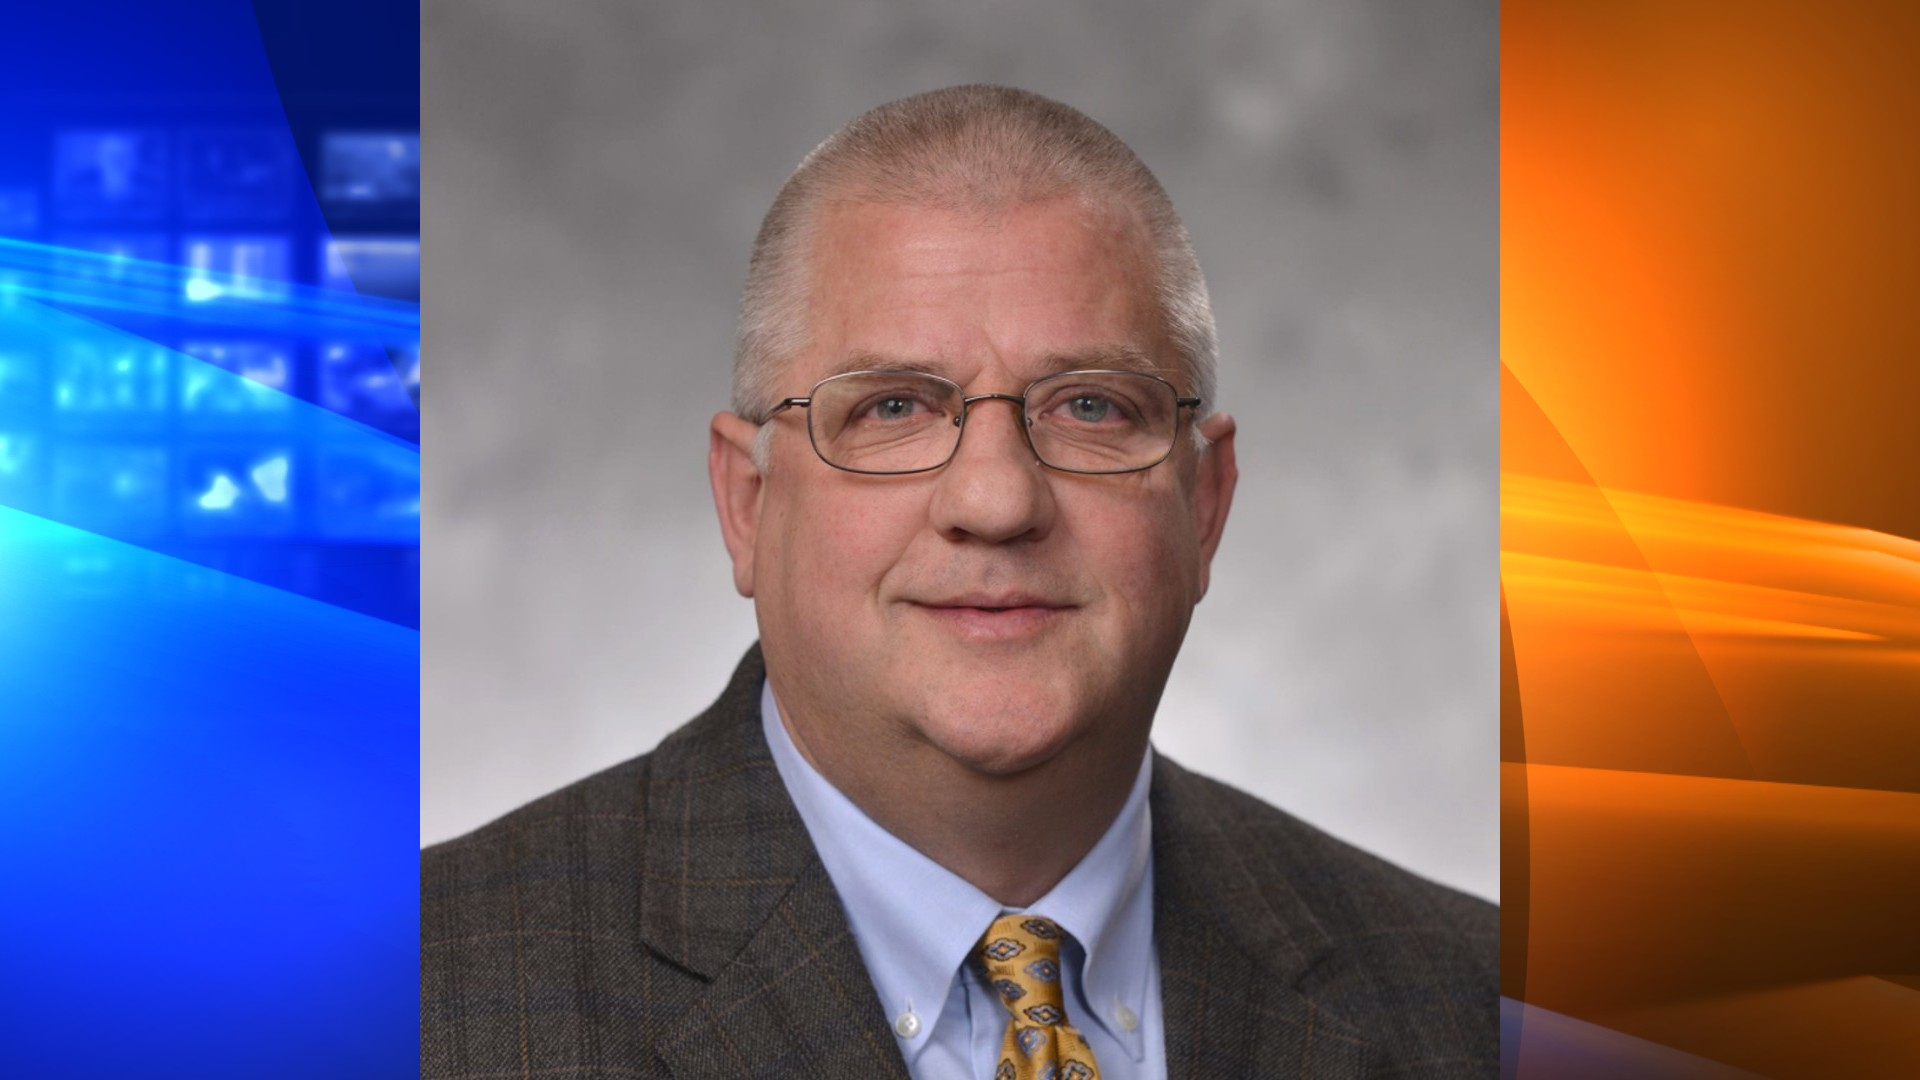 Rep. Mike Nearman is seen in an official photo.